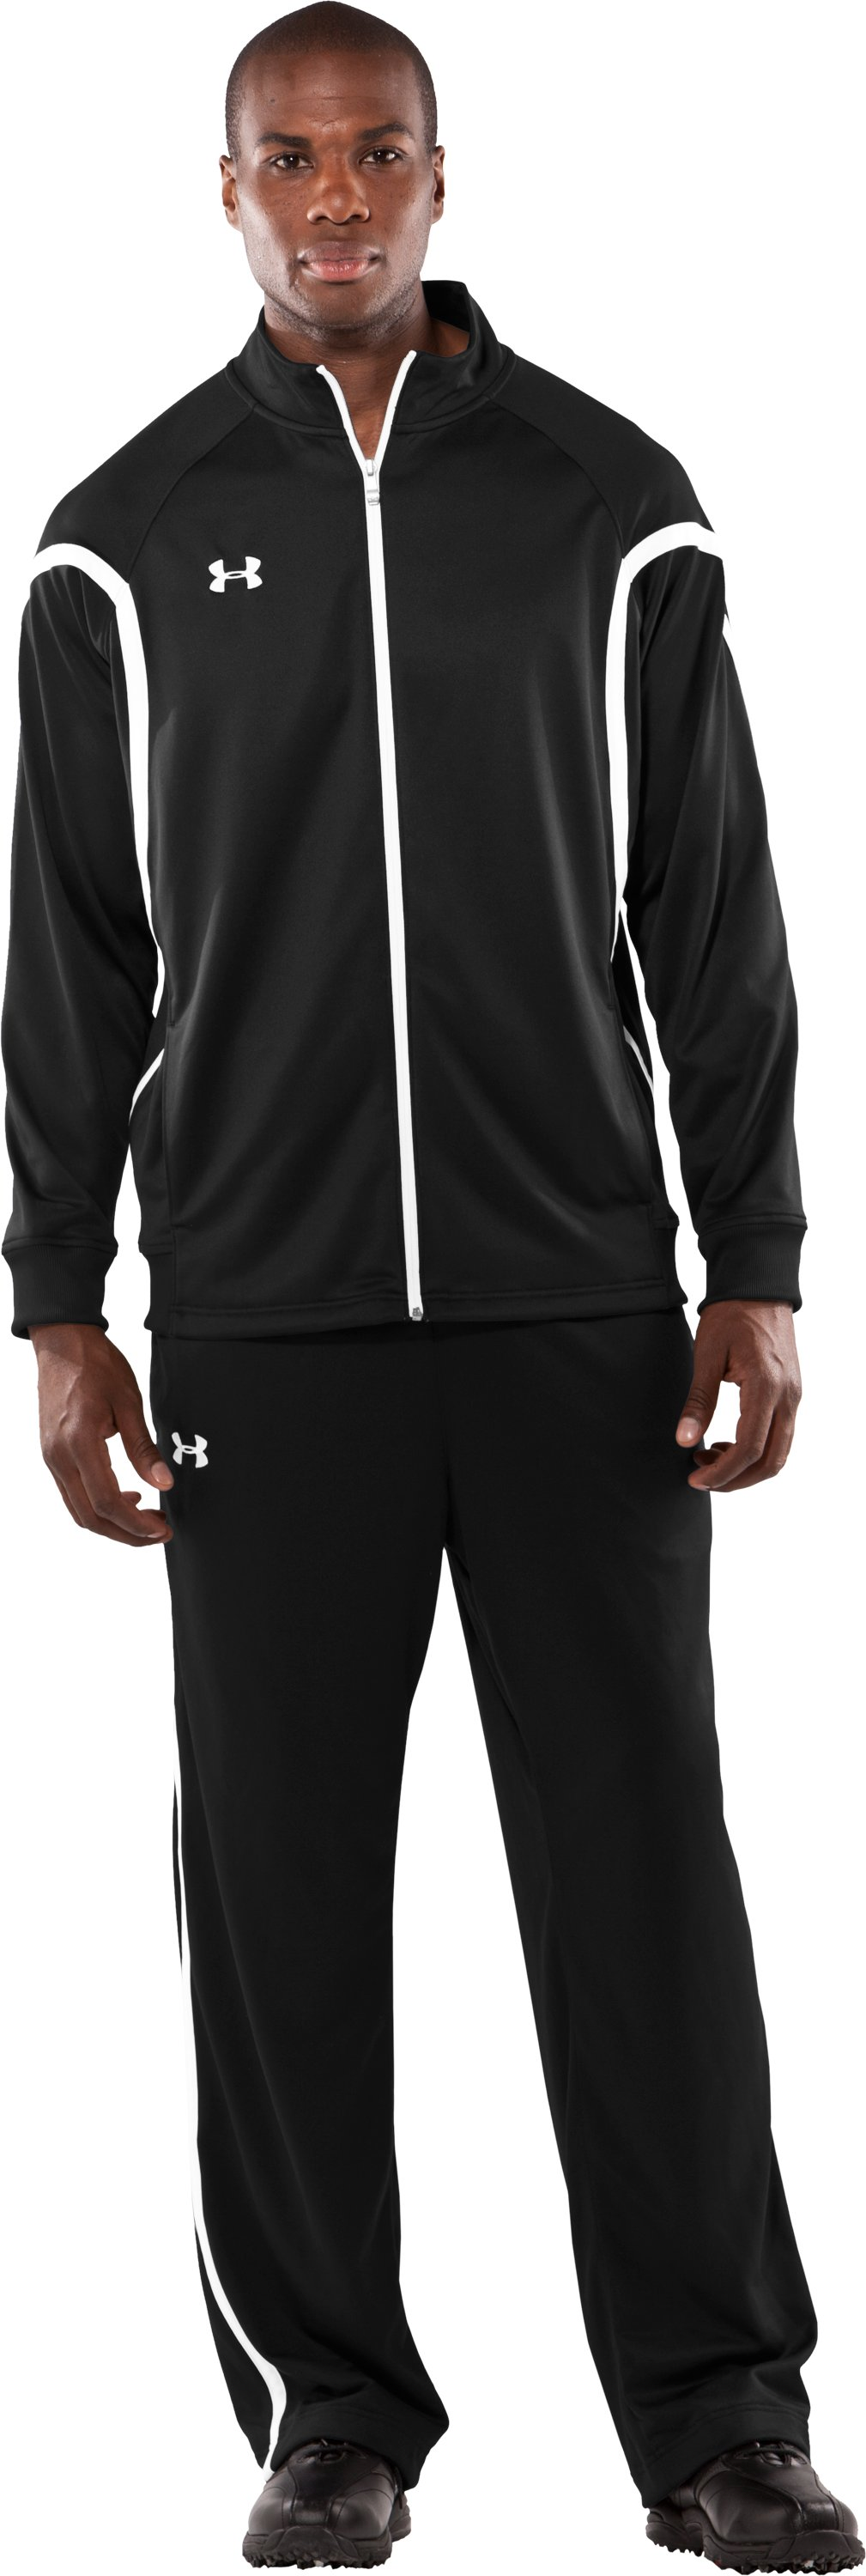 Men's Team Knit Warm-Up Jacket, Black , zoomed image